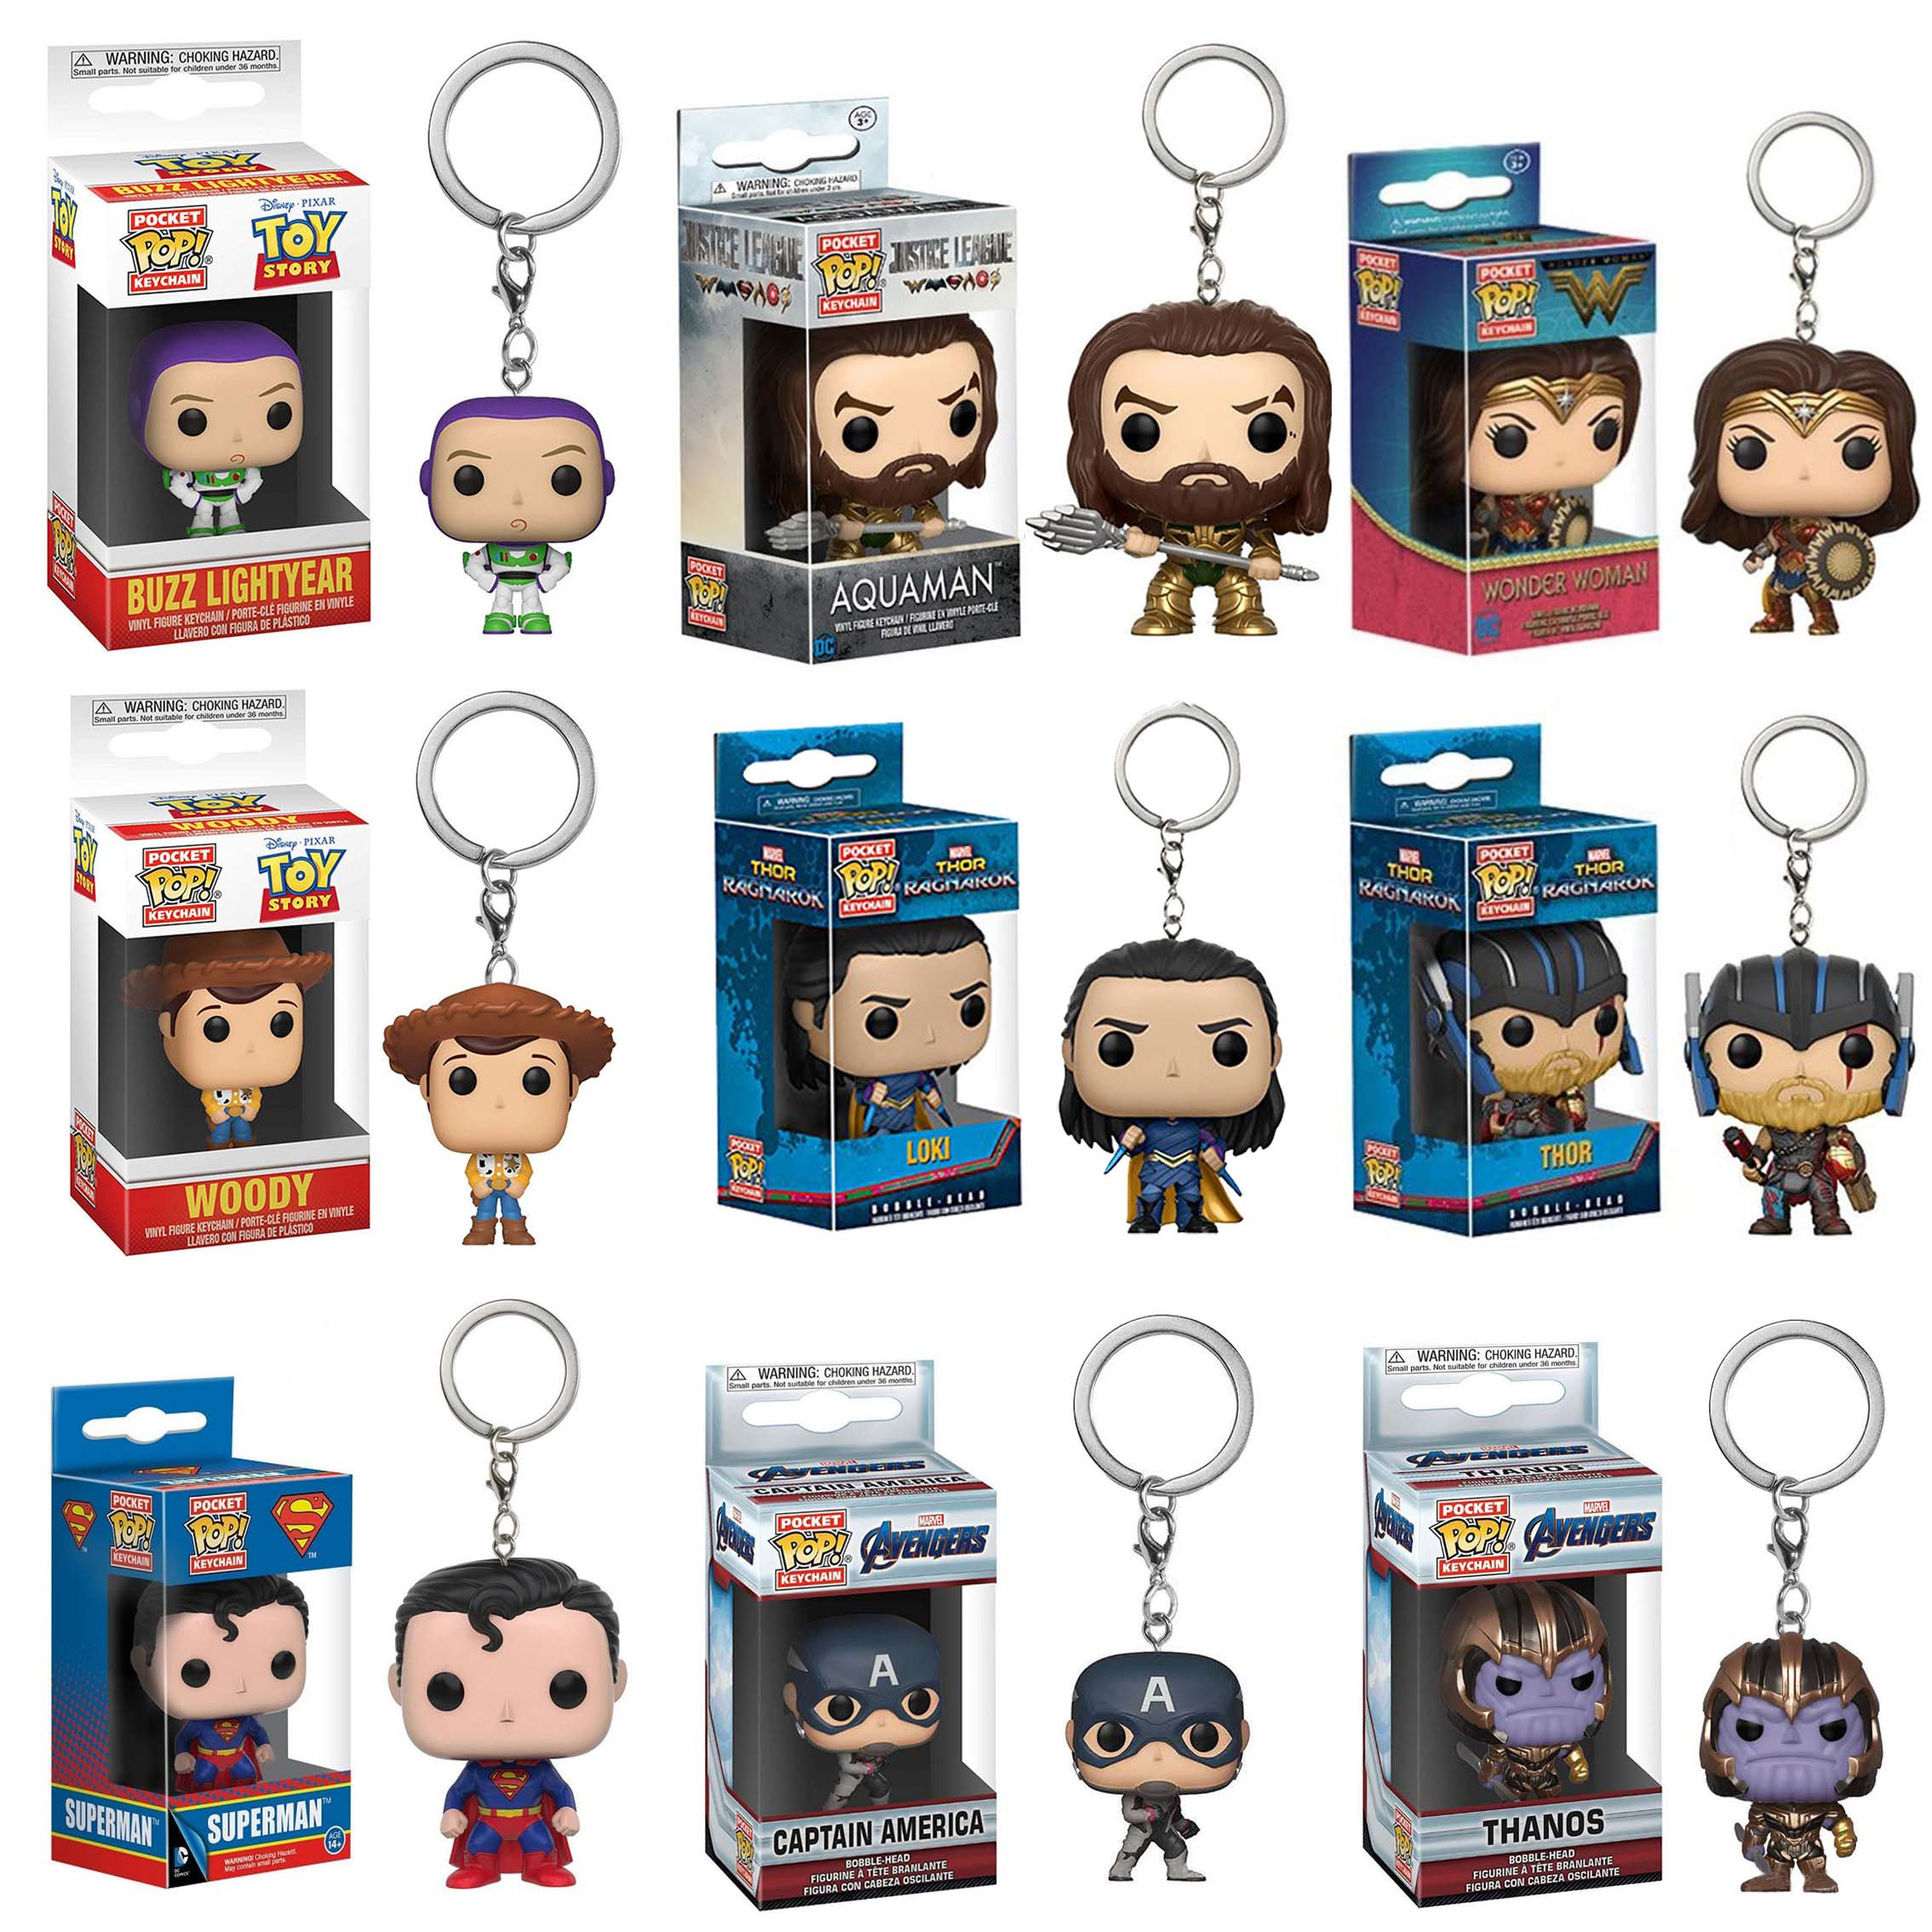 funko-pop-keychain-font-b-marvel-b-font-ironman-spiderman-disney-toy-store-schoolbag-pendant-game-of-thrones-kids-toys-for-children